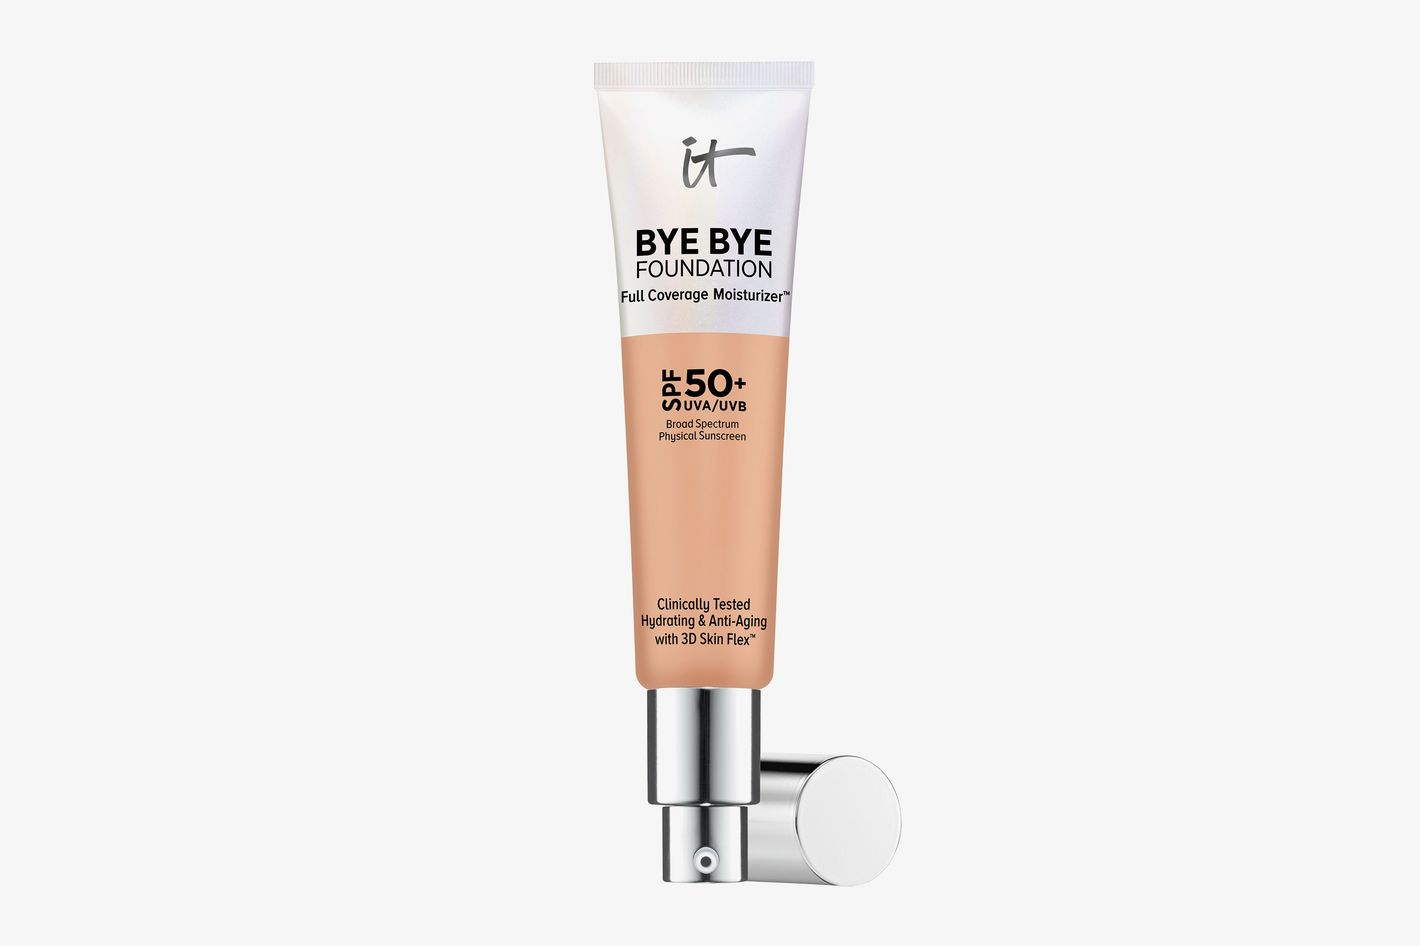 Bye Bye Foundation Full Coverage Moisturizer with SPF 50+ Medium Tan